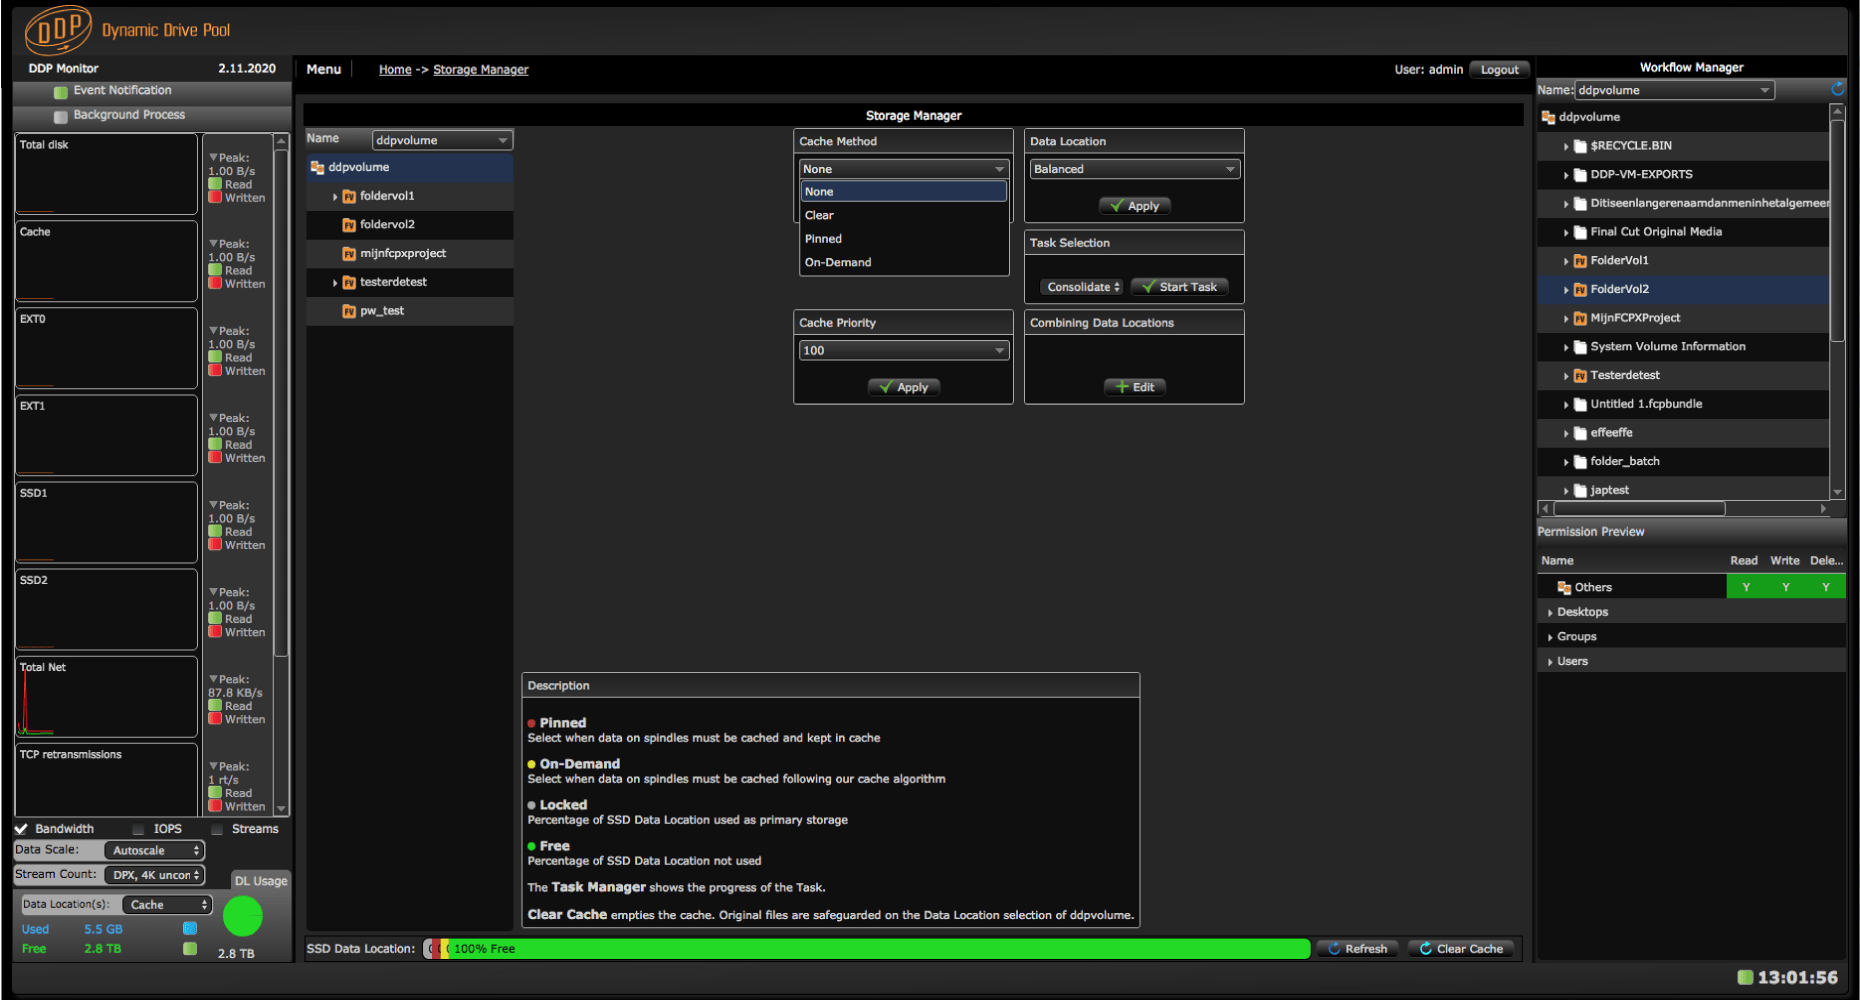 The Cache Storage Manager screen